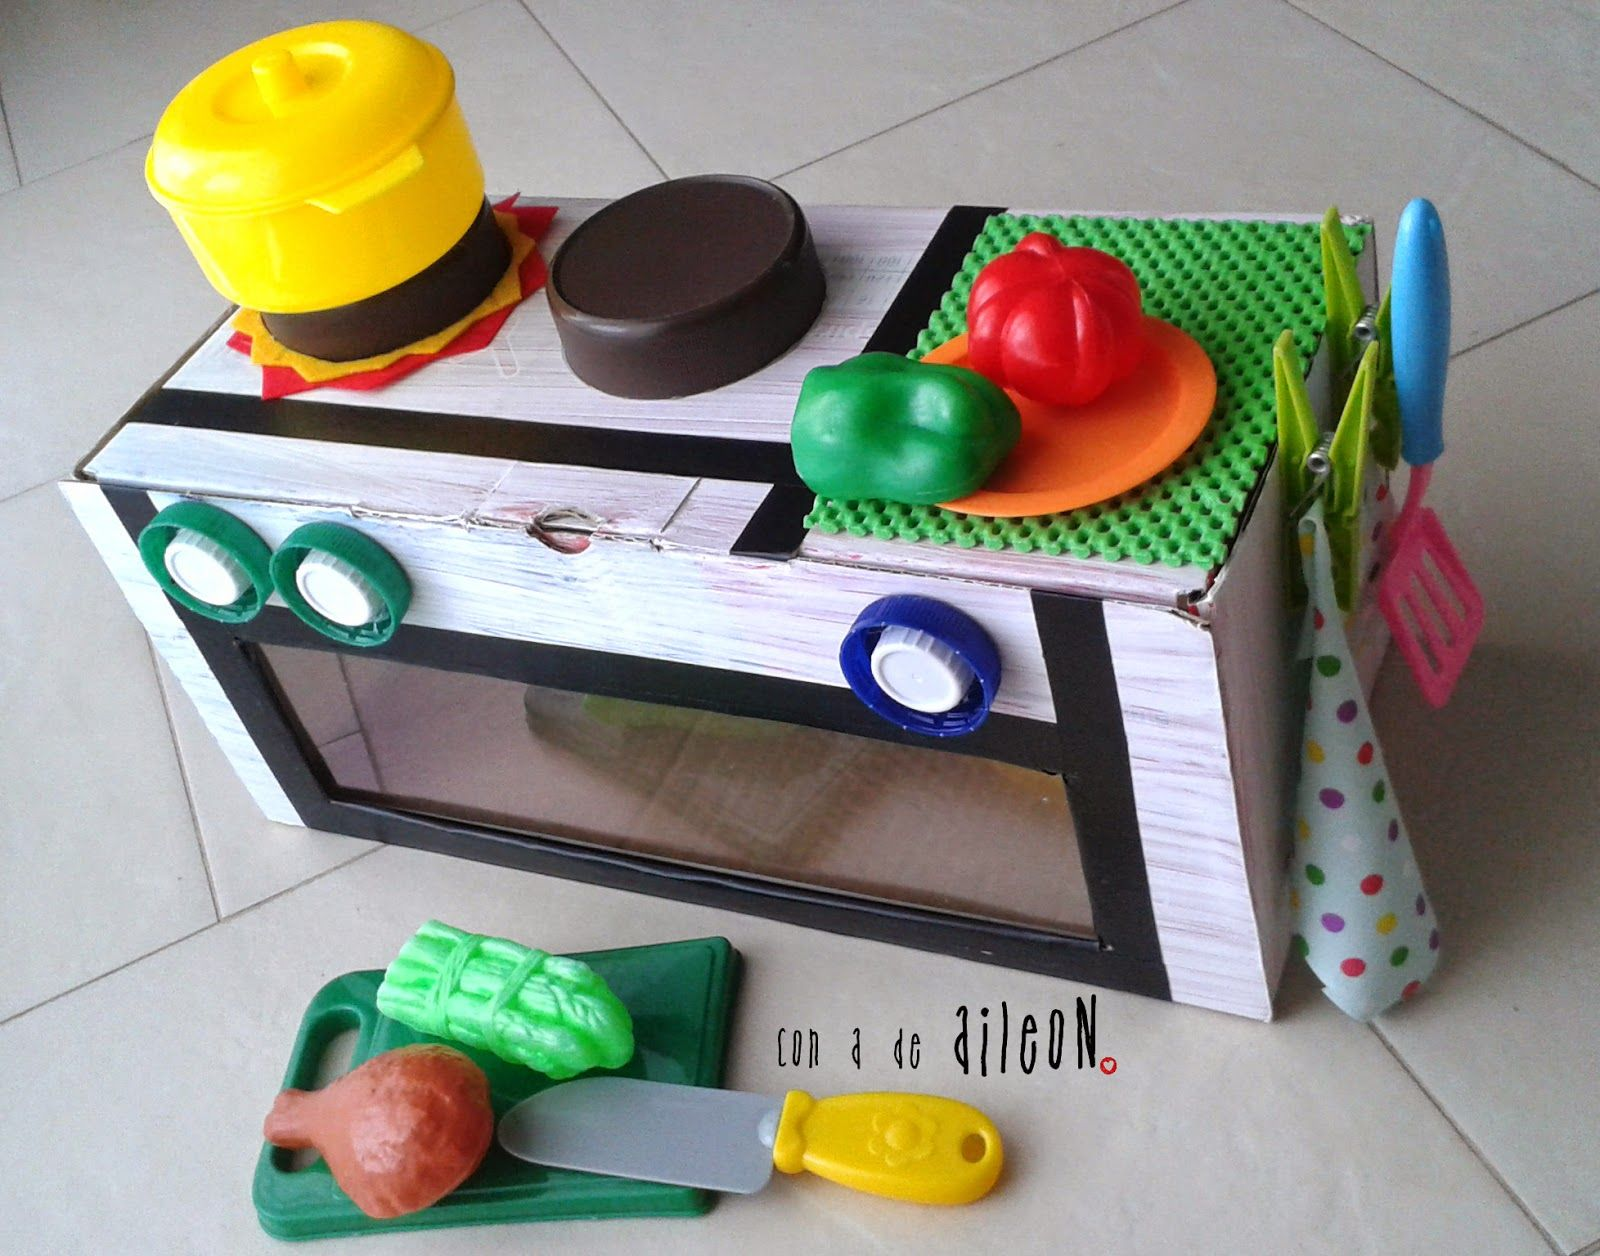 recycled kitchen diy kitchen children nios cocina reciclada juguete casero